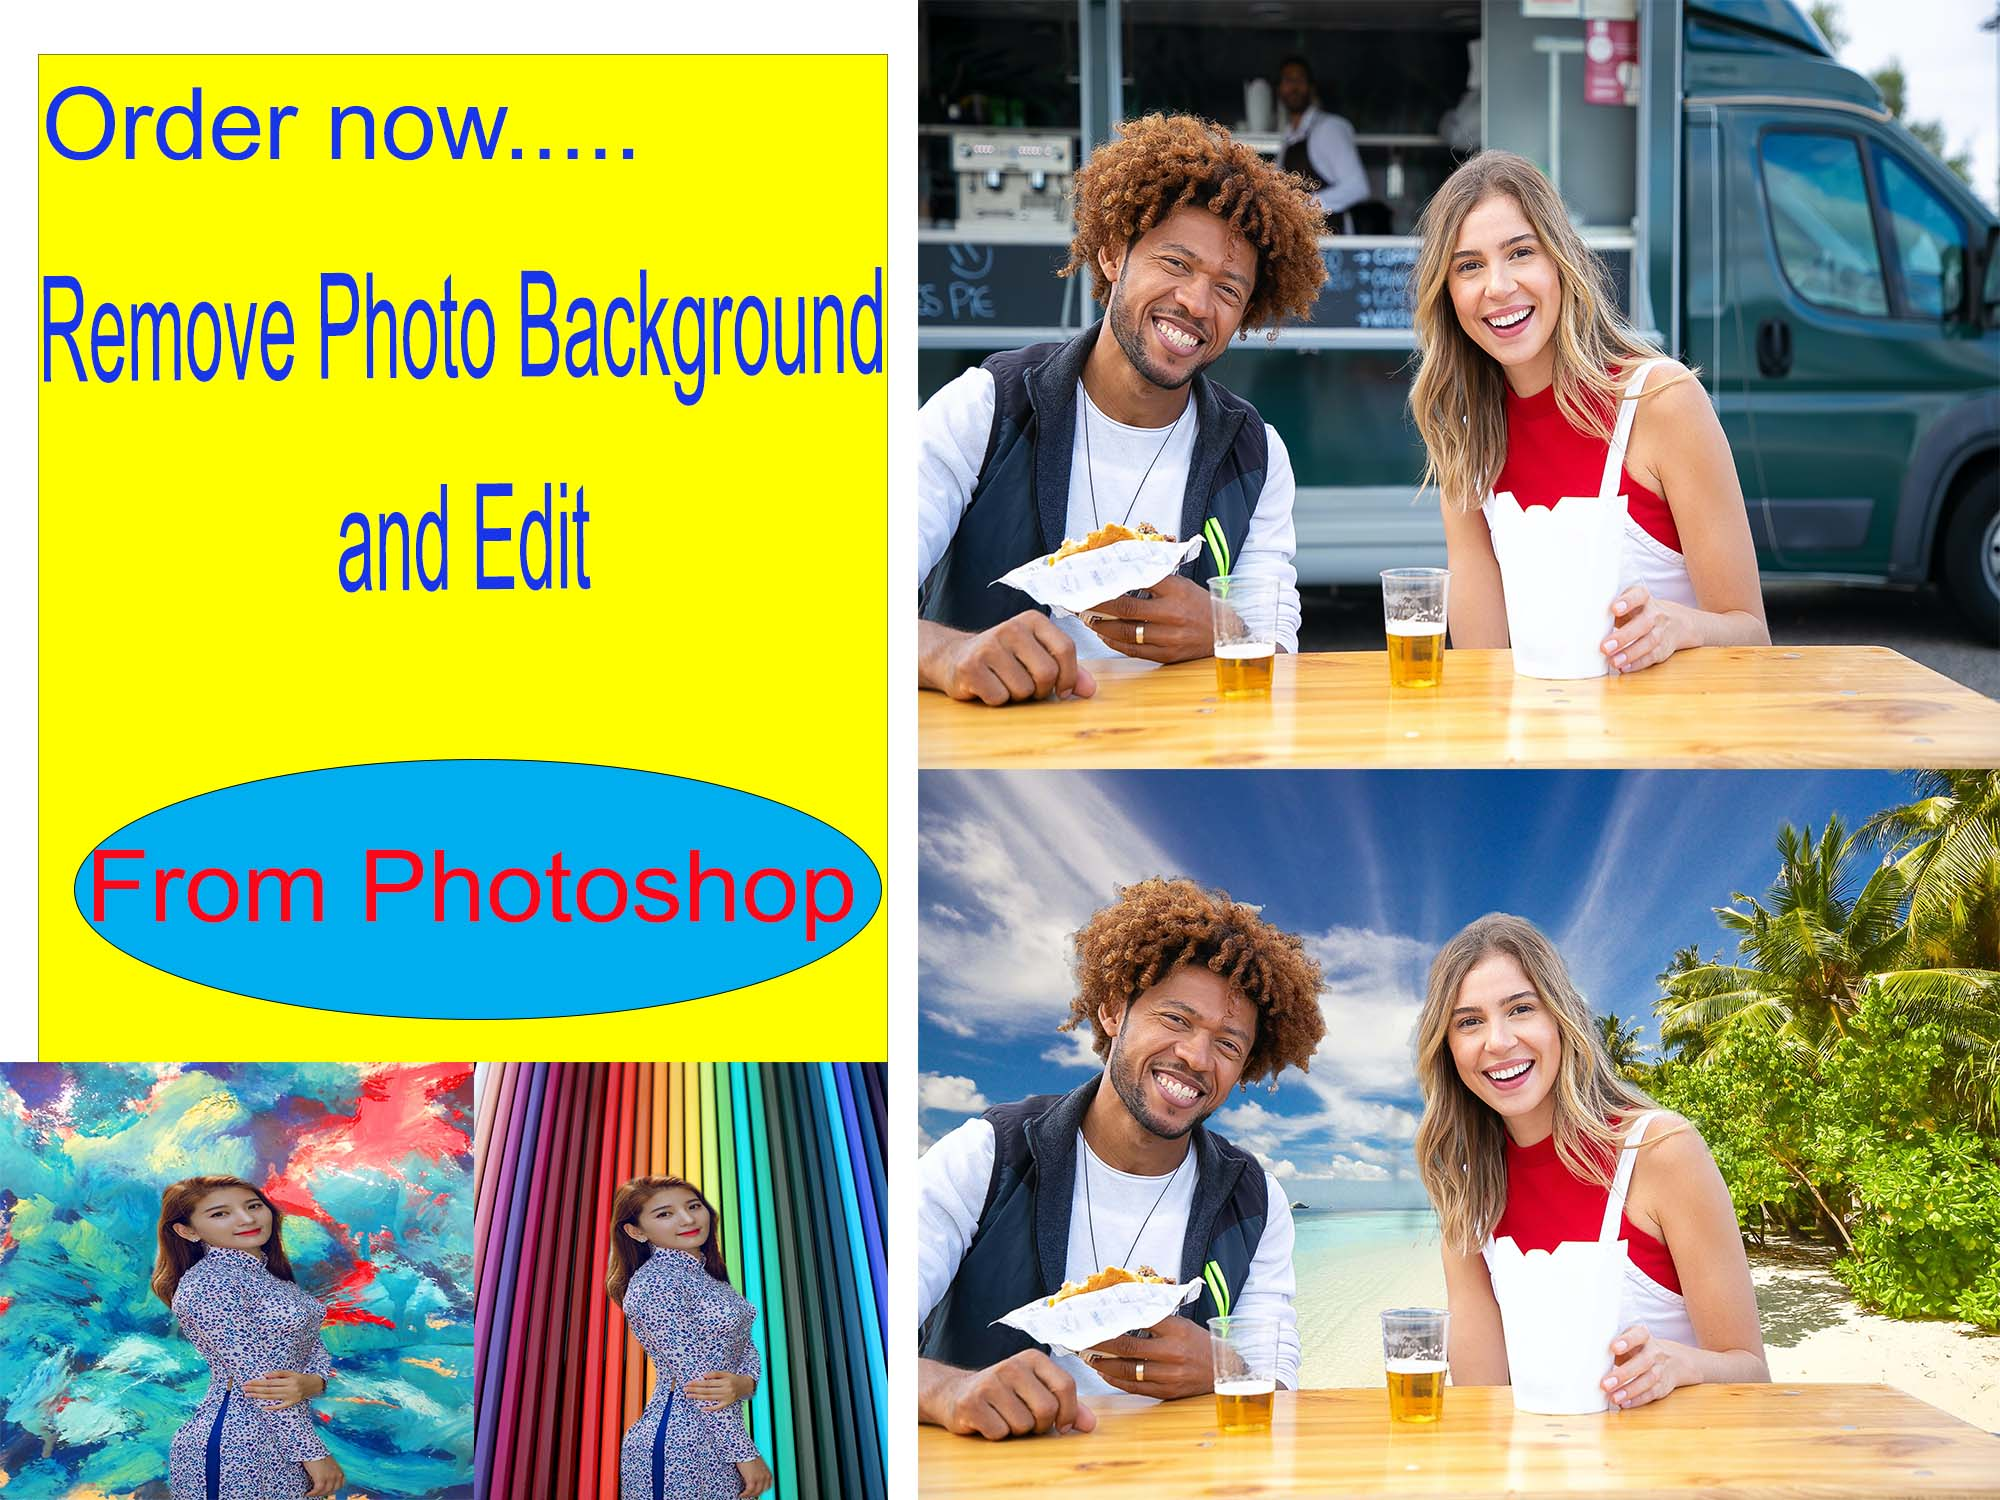 Remove Photo Background and edit photo from Photoshop within 24 Hr